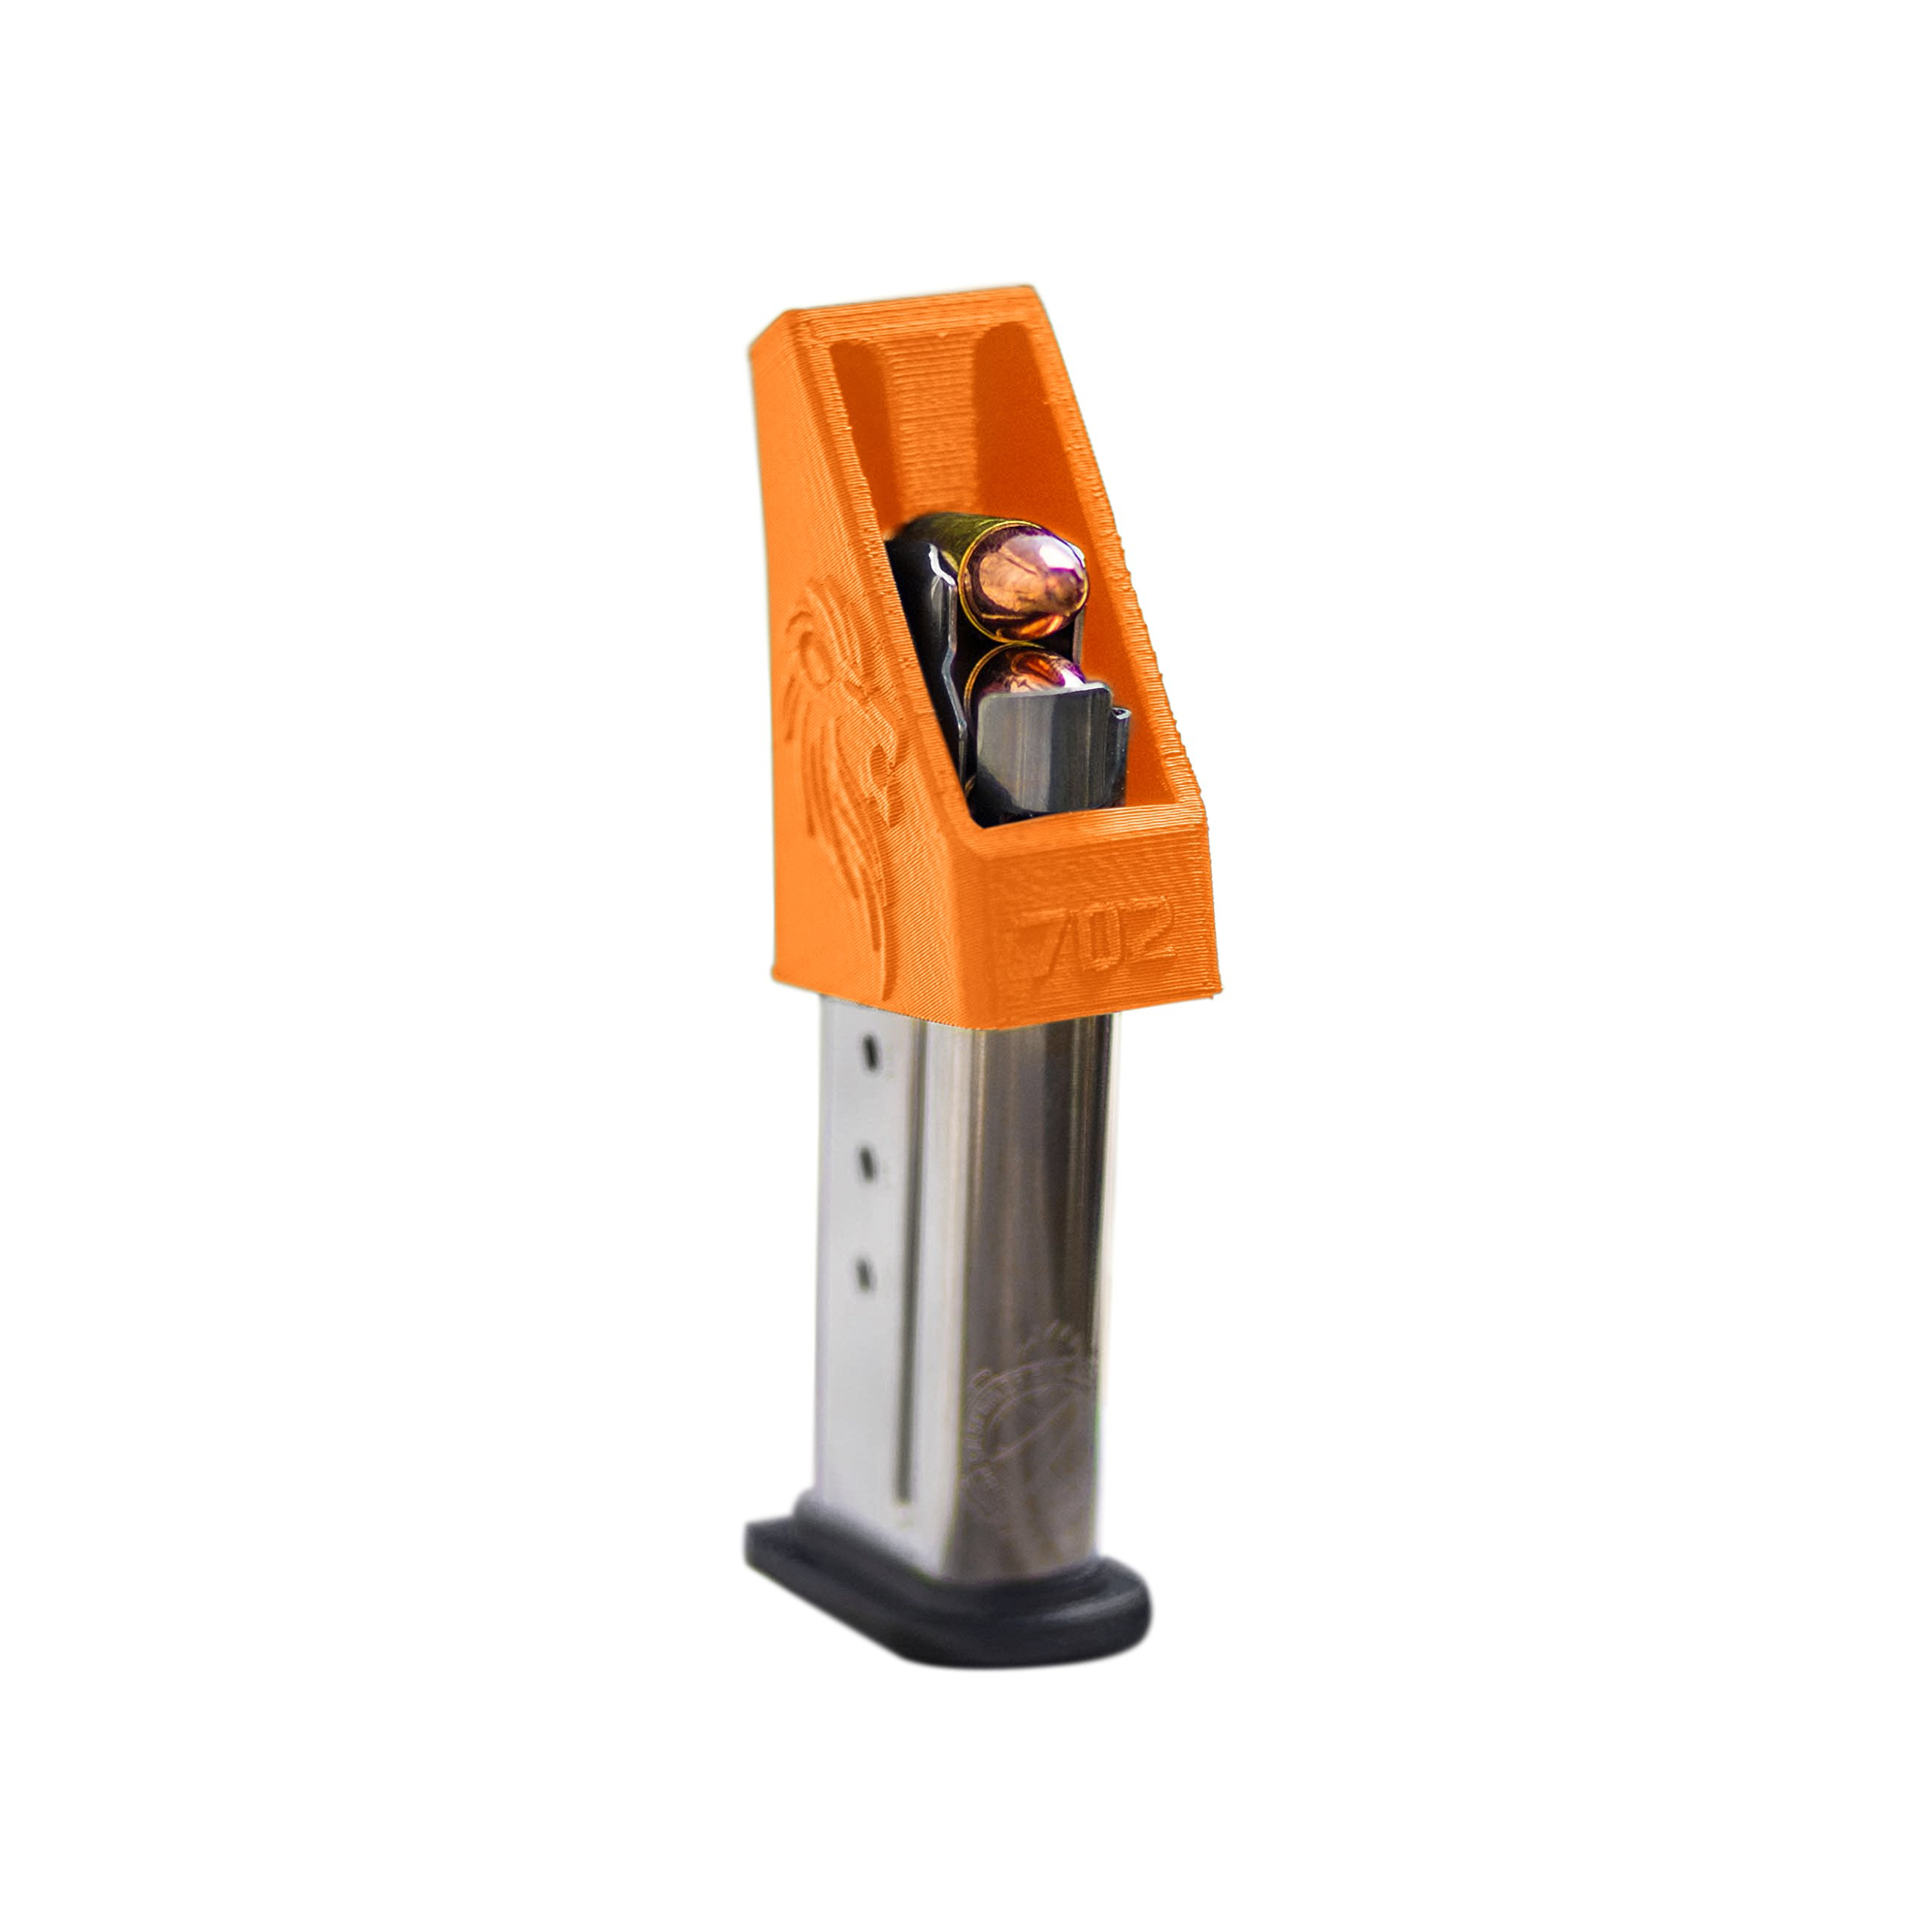 RAE Industries Smith & Wesson M&P Shield 9MM Magazine Loader by RAE-702-S&W (Orange)